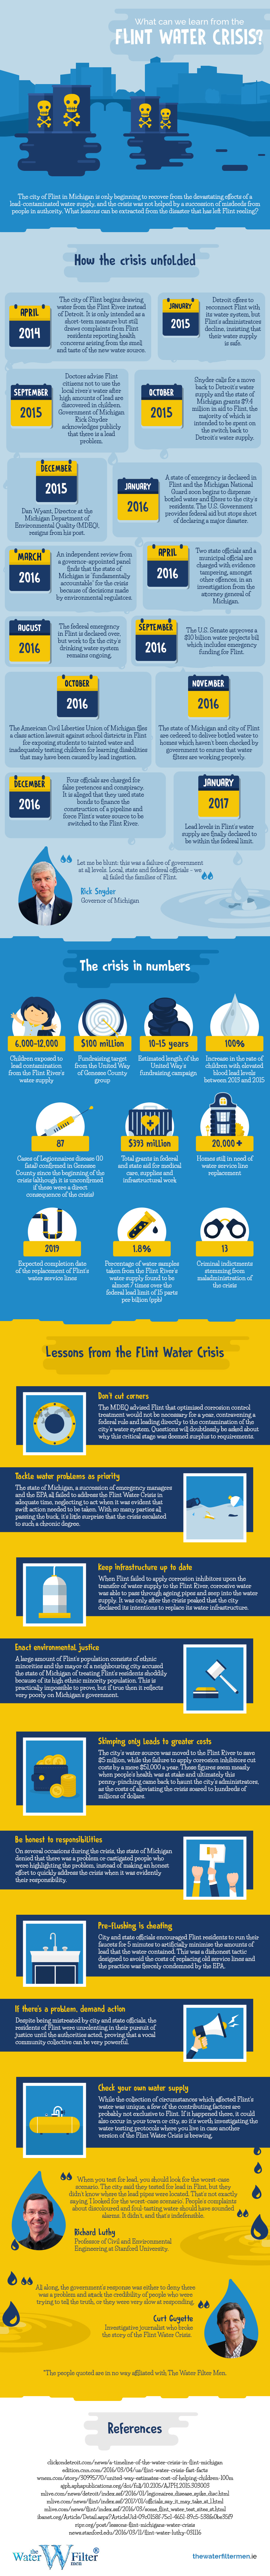 Infographic on the Flint Water Crisis